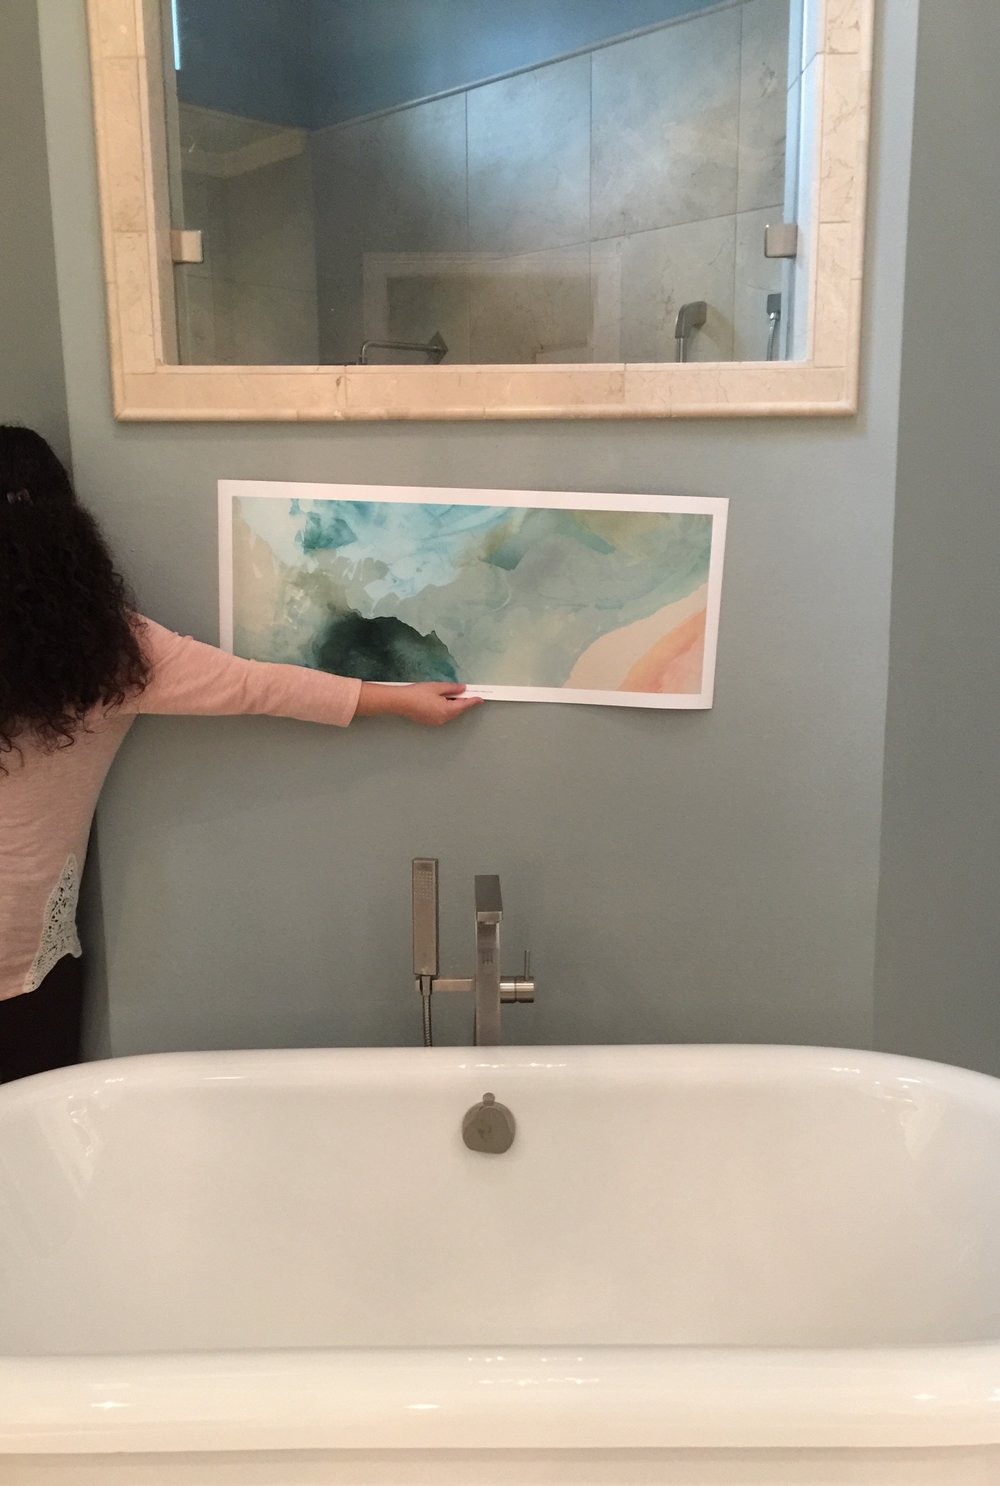 Selecting art for the bathroom  #art #bathroomart